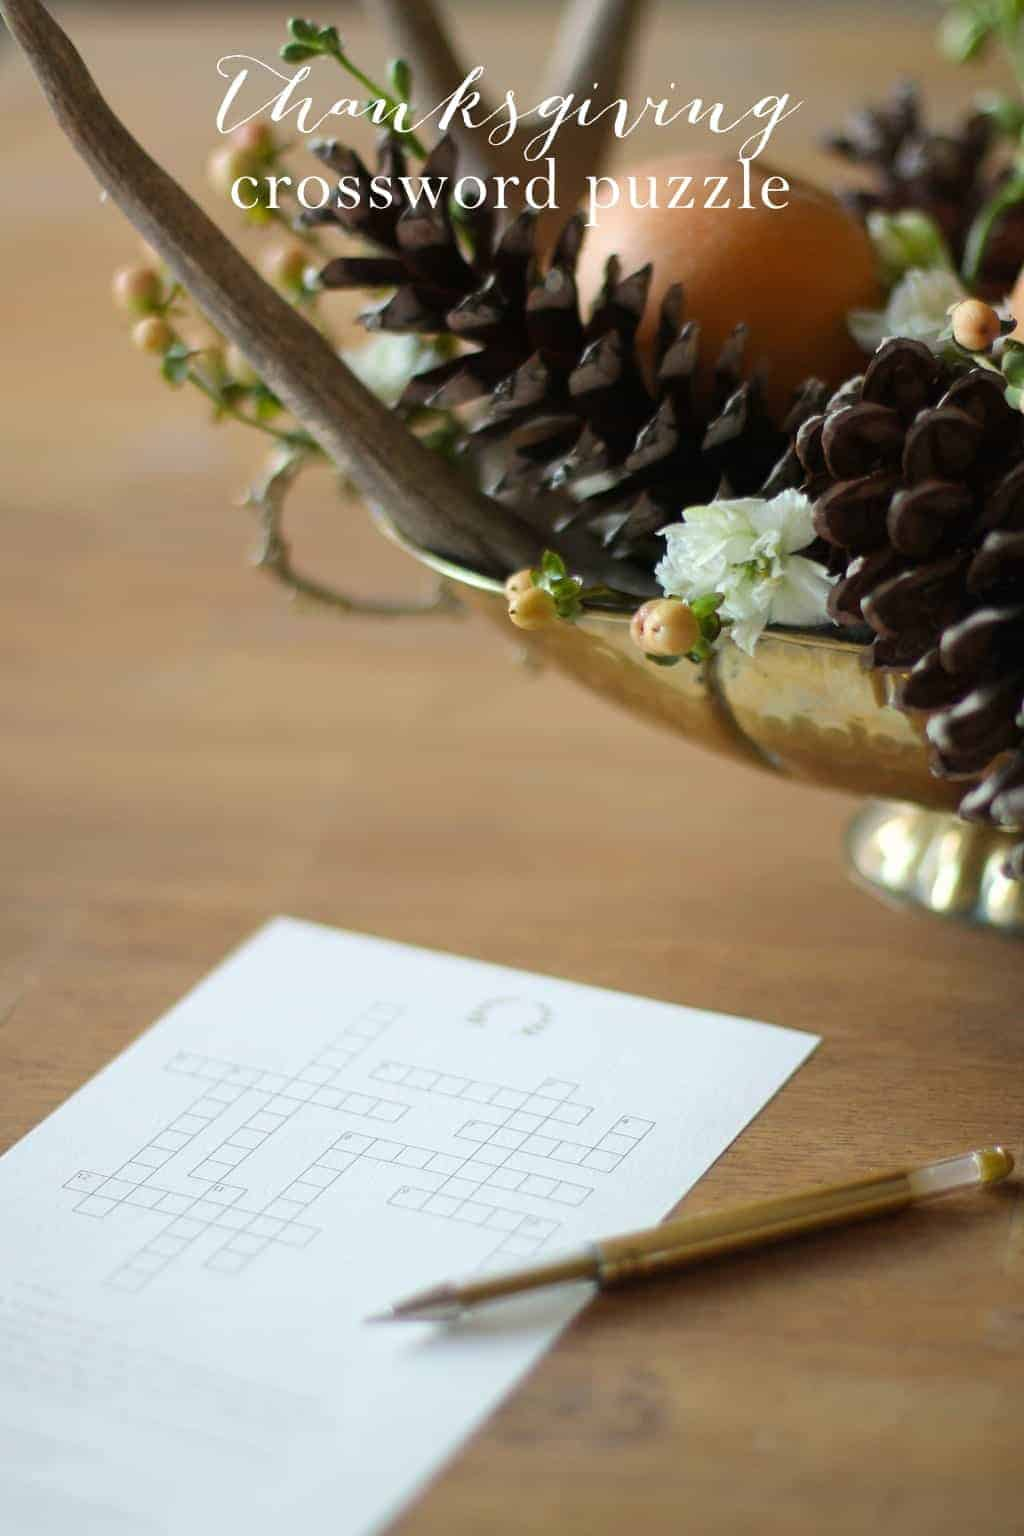 A printable Thanksgiving crossword puzzle on a wooden table with a gold centerpiece in the background.